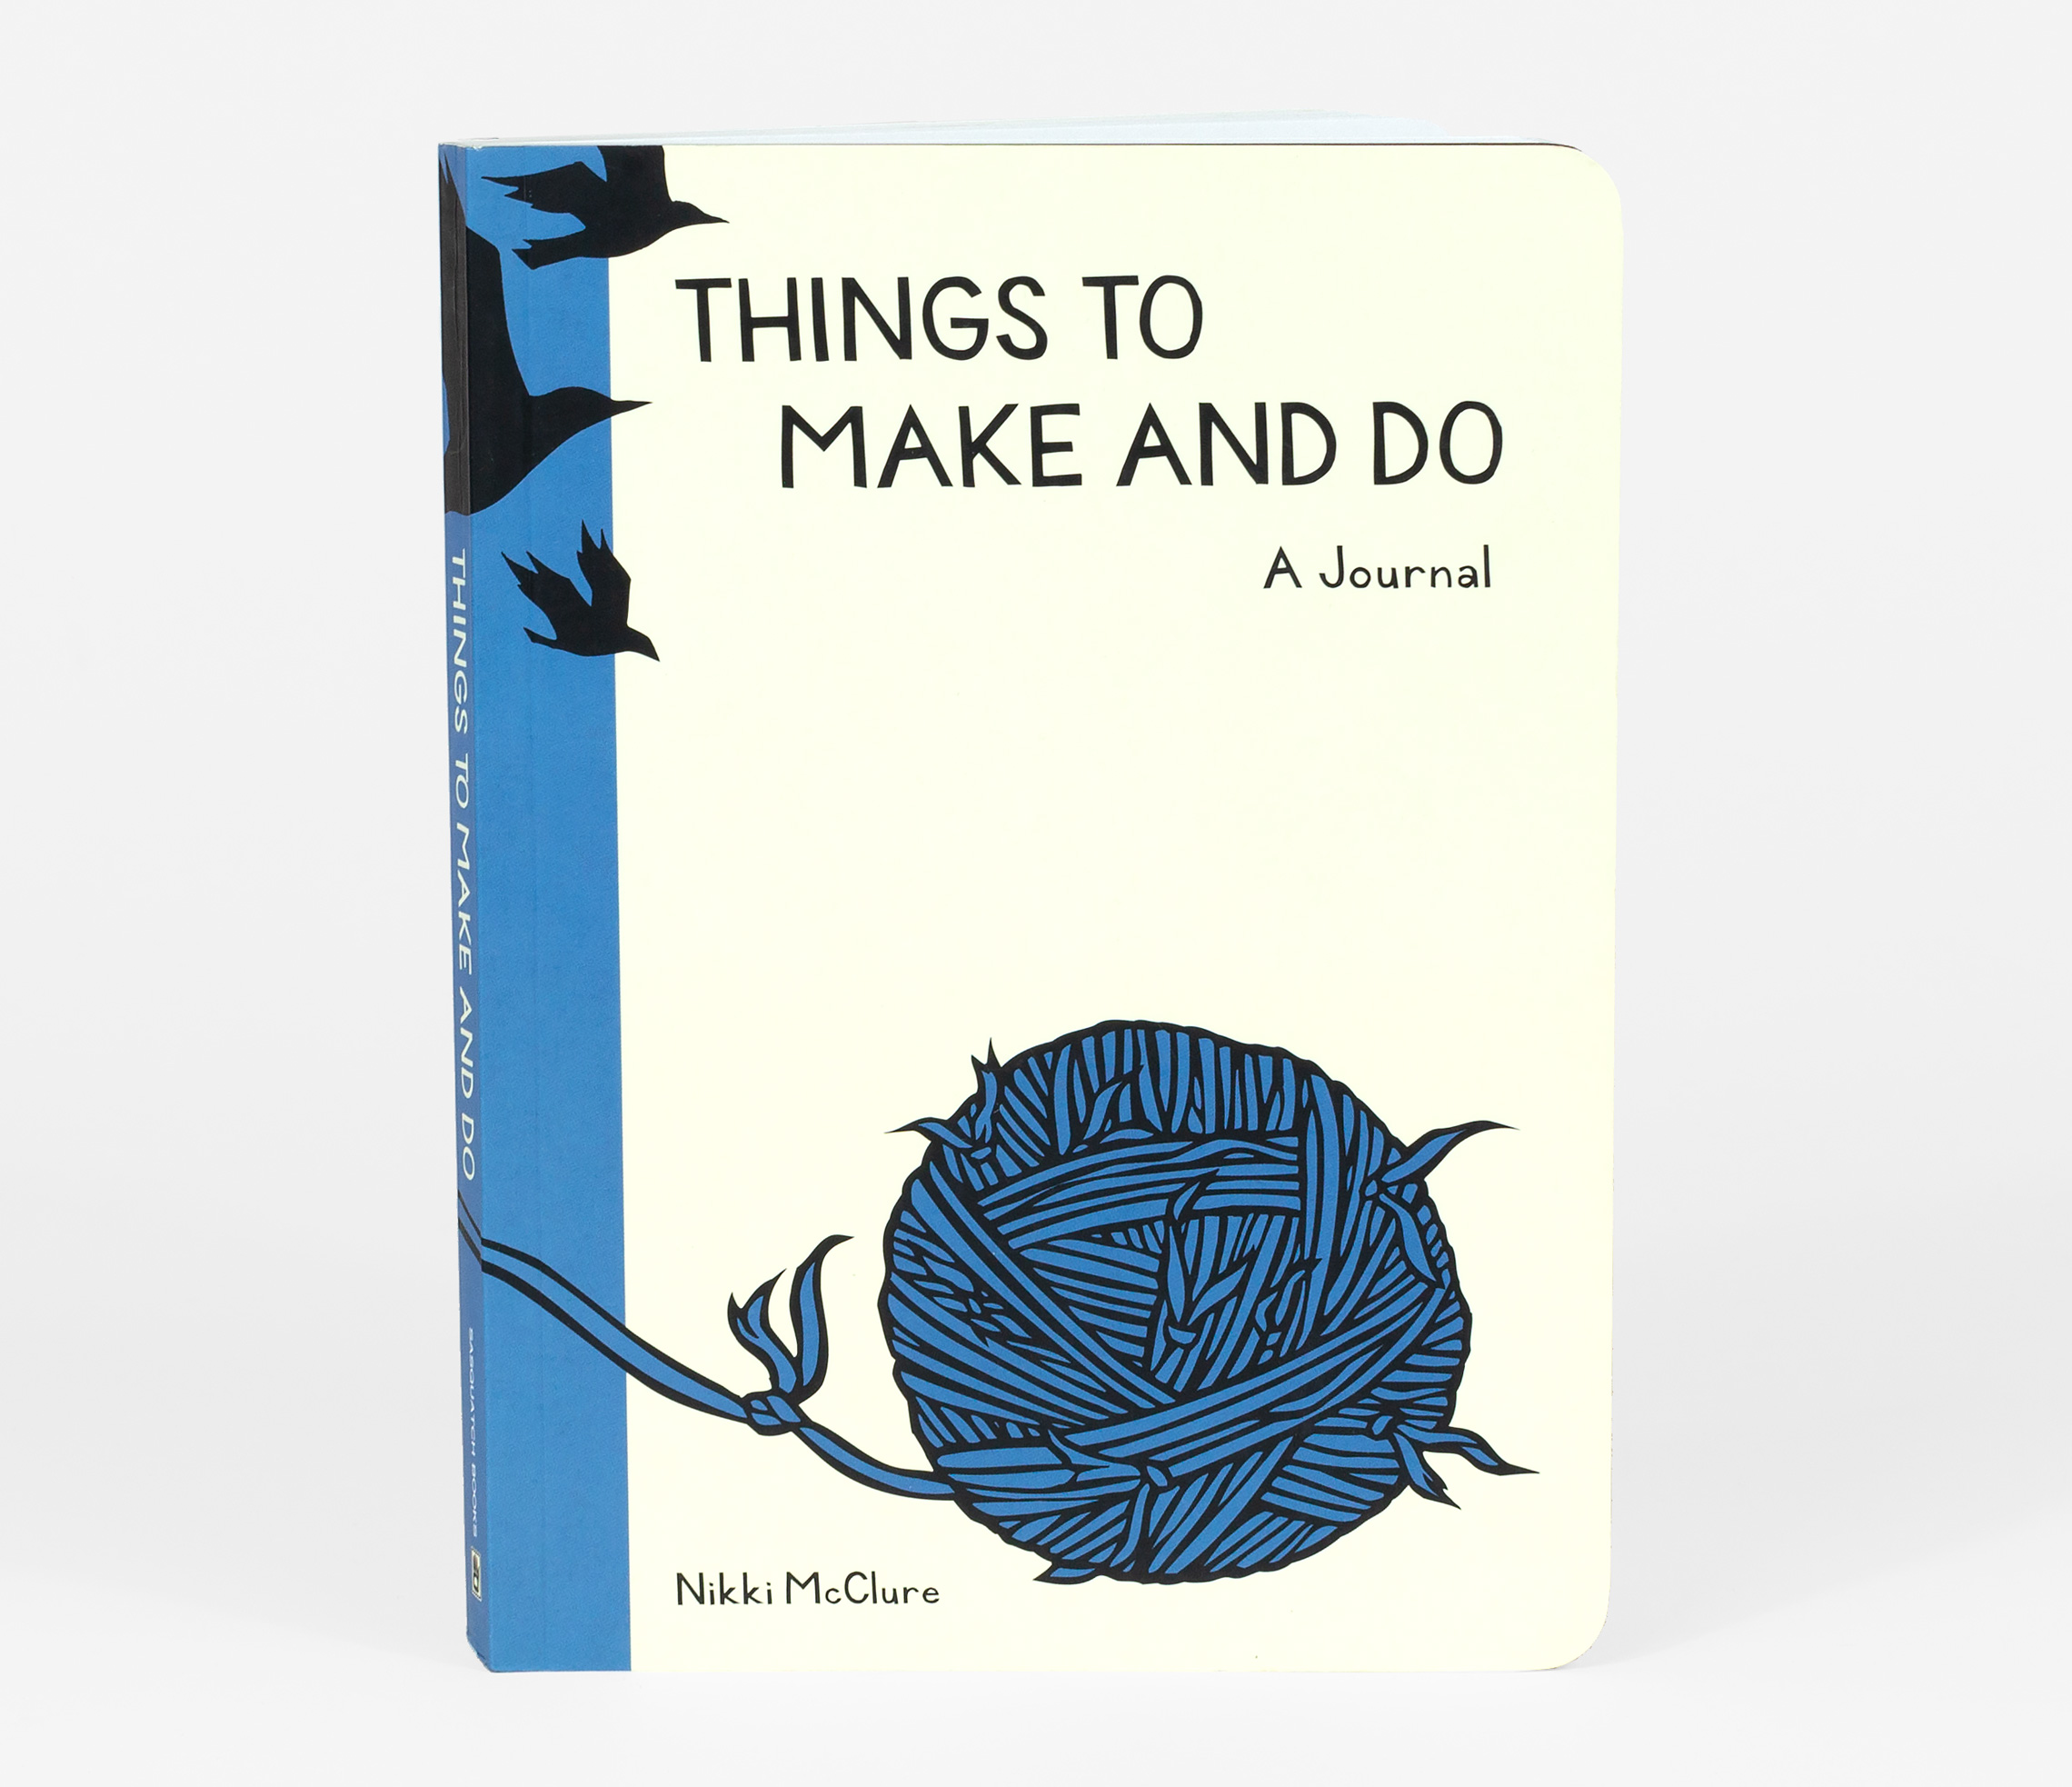 Nikki McClure - Things To Make And Do